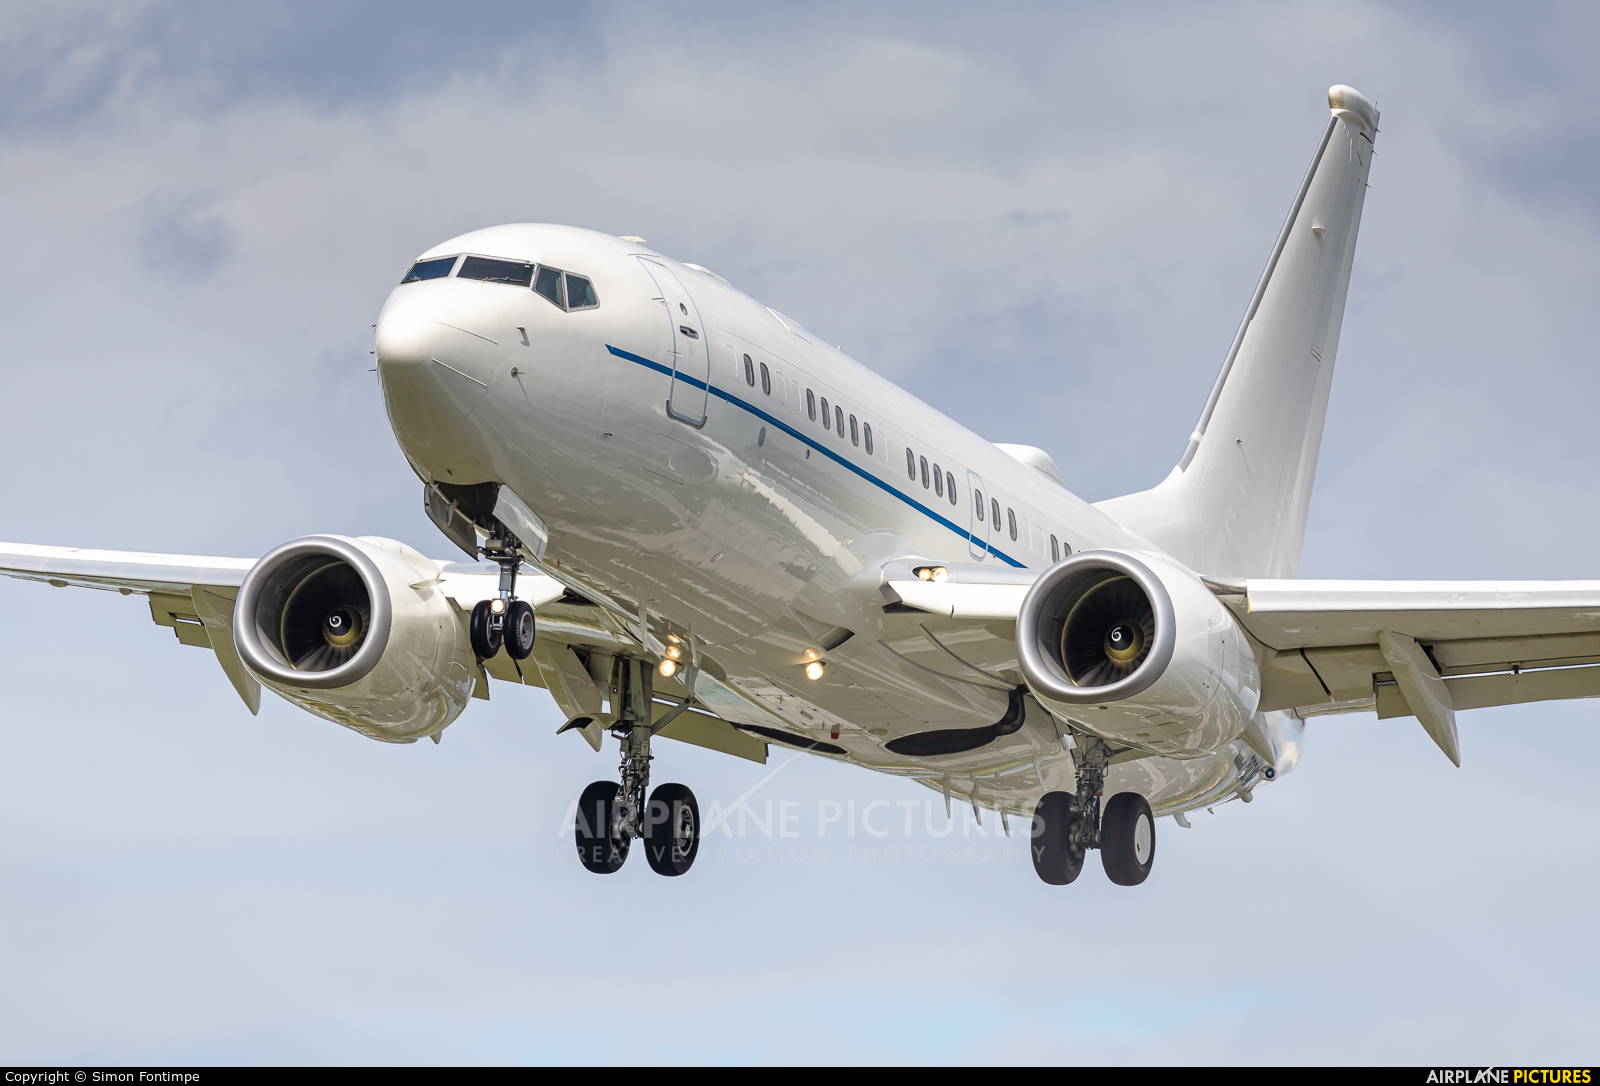 USA - Air Force 02-0042 aircraft at Paris - Le Bourget